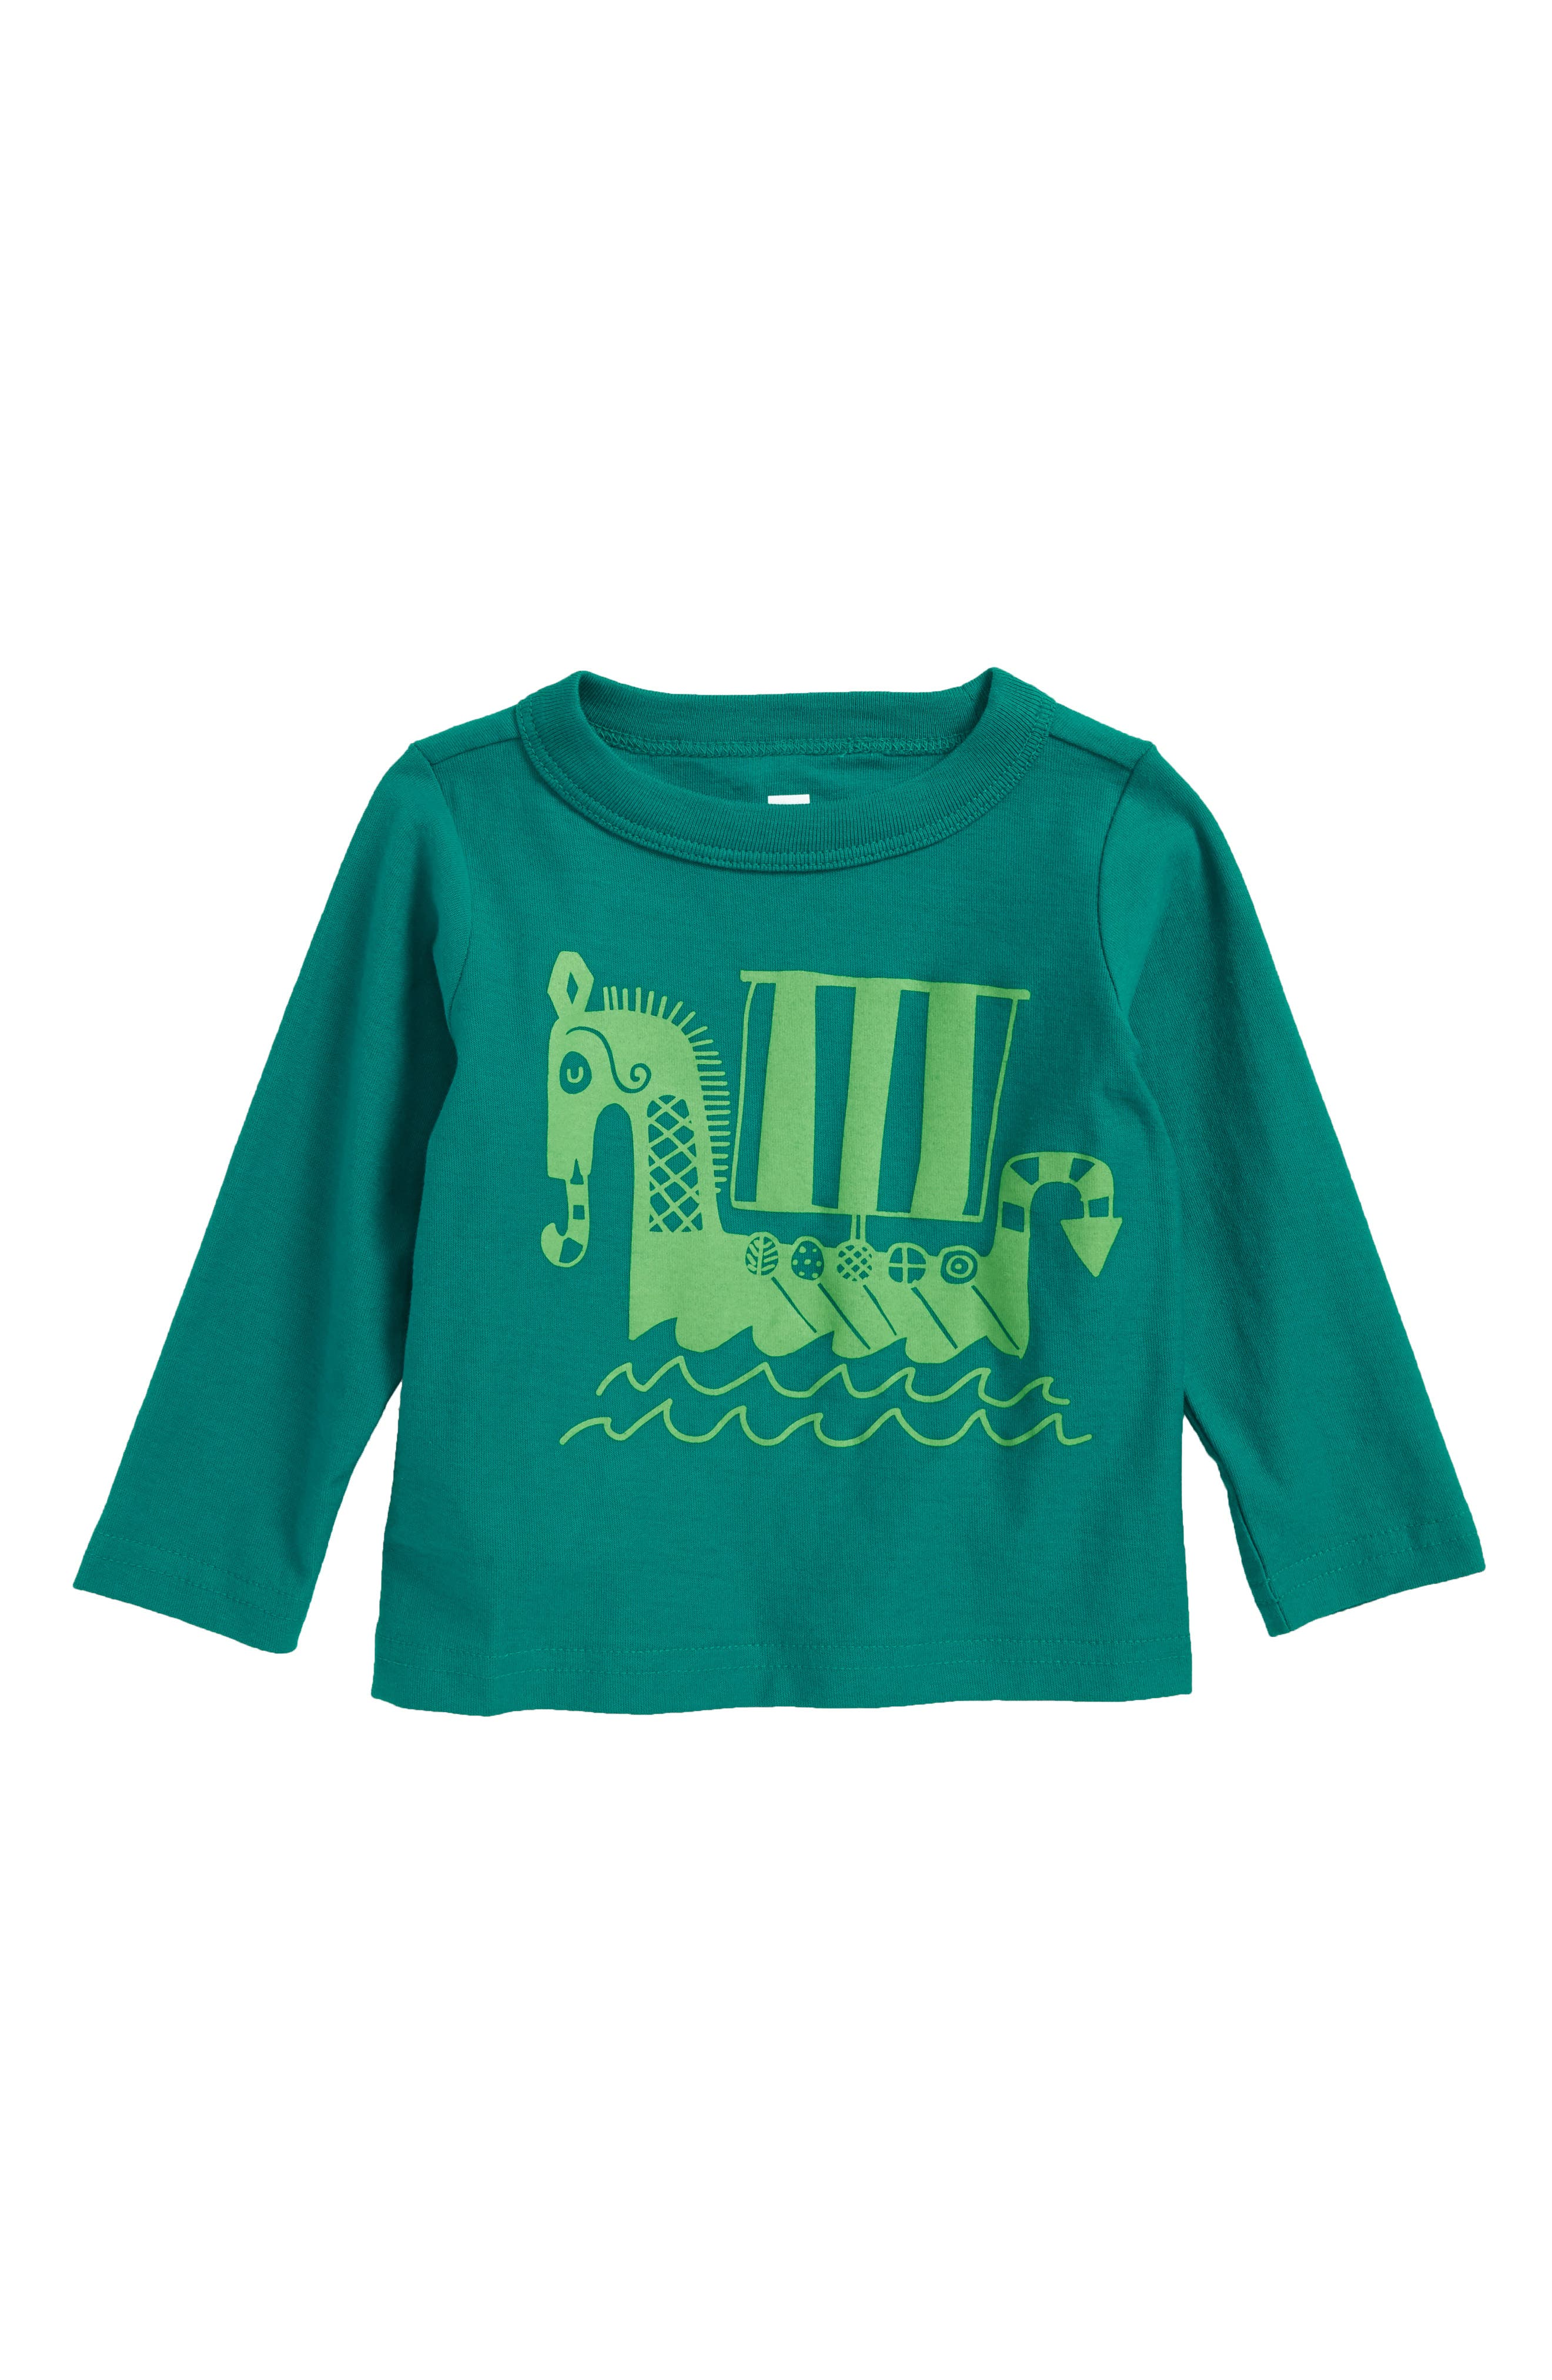 Up Helly Aa T-Shirt,                         Main,                         color,